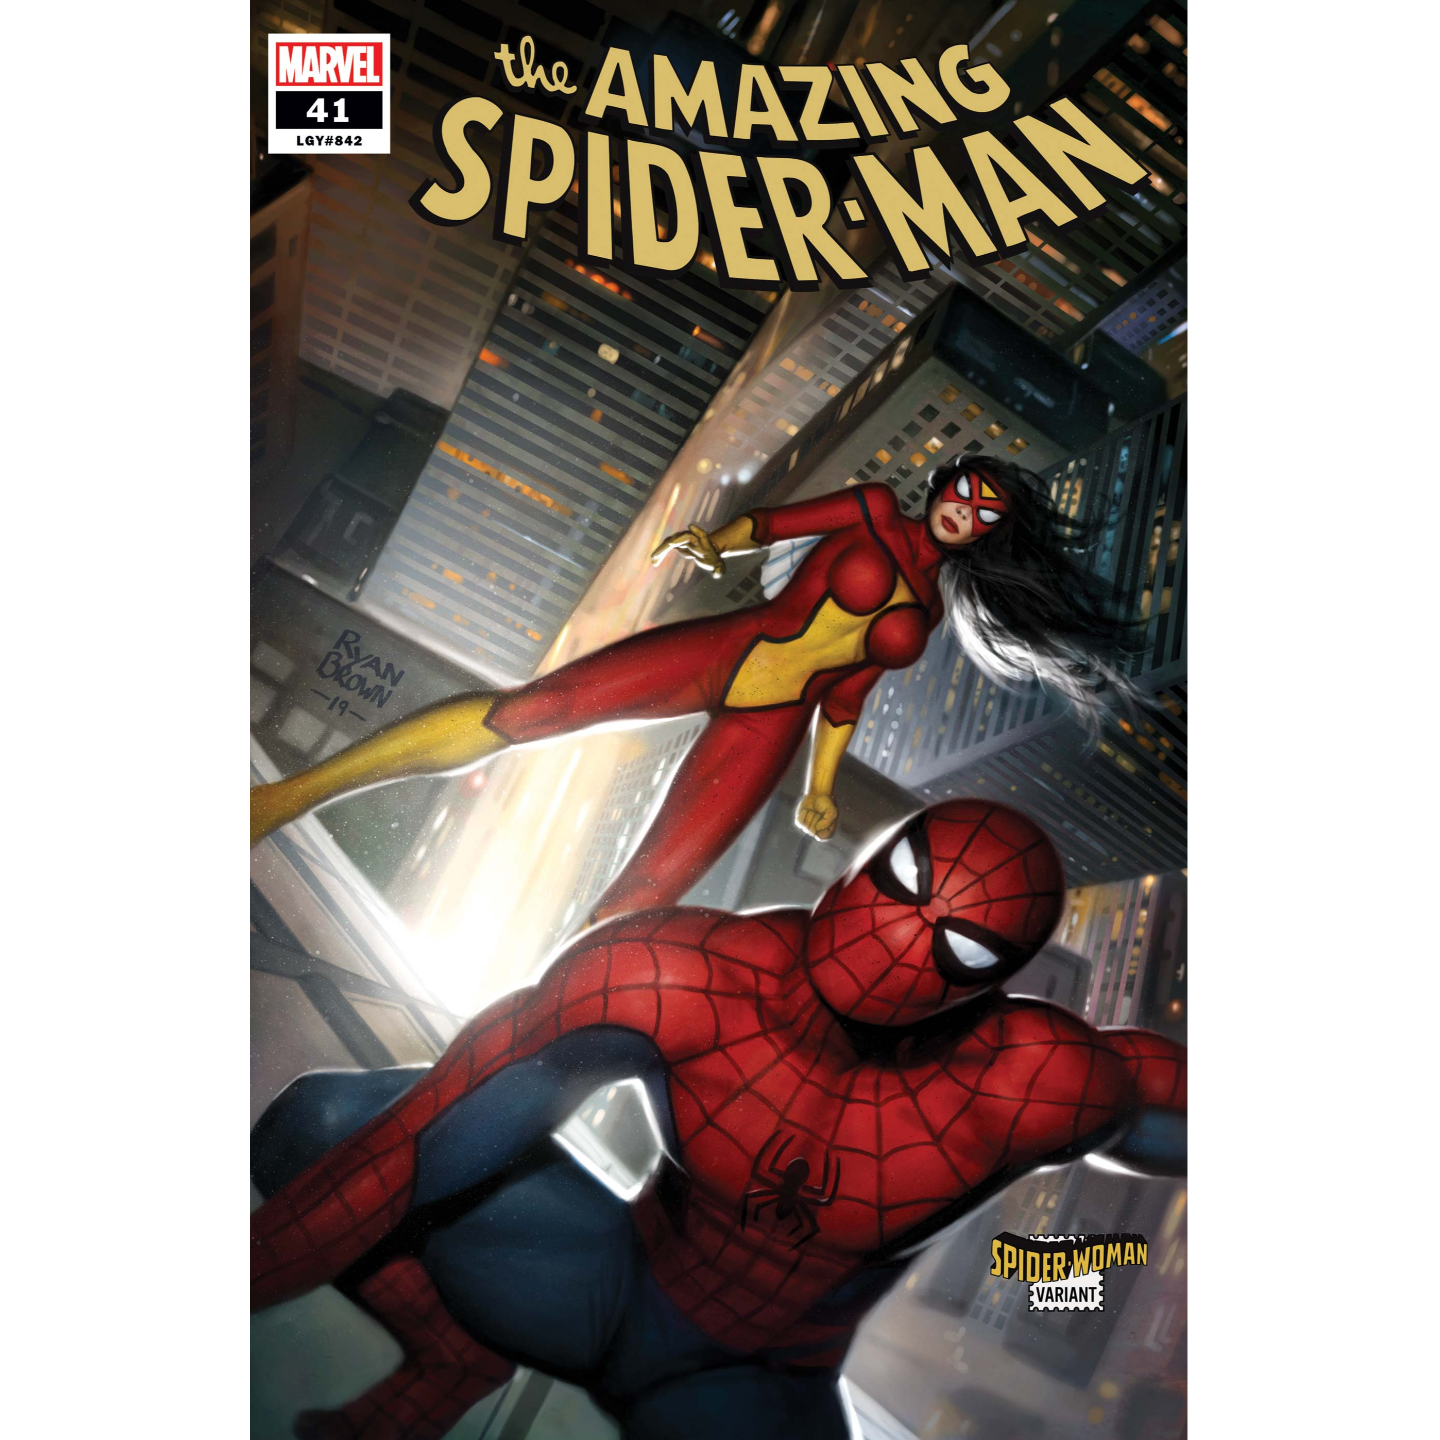 AMAZING SPIDER-MAN 41 BROWN SPIDER-WOMAN VAR